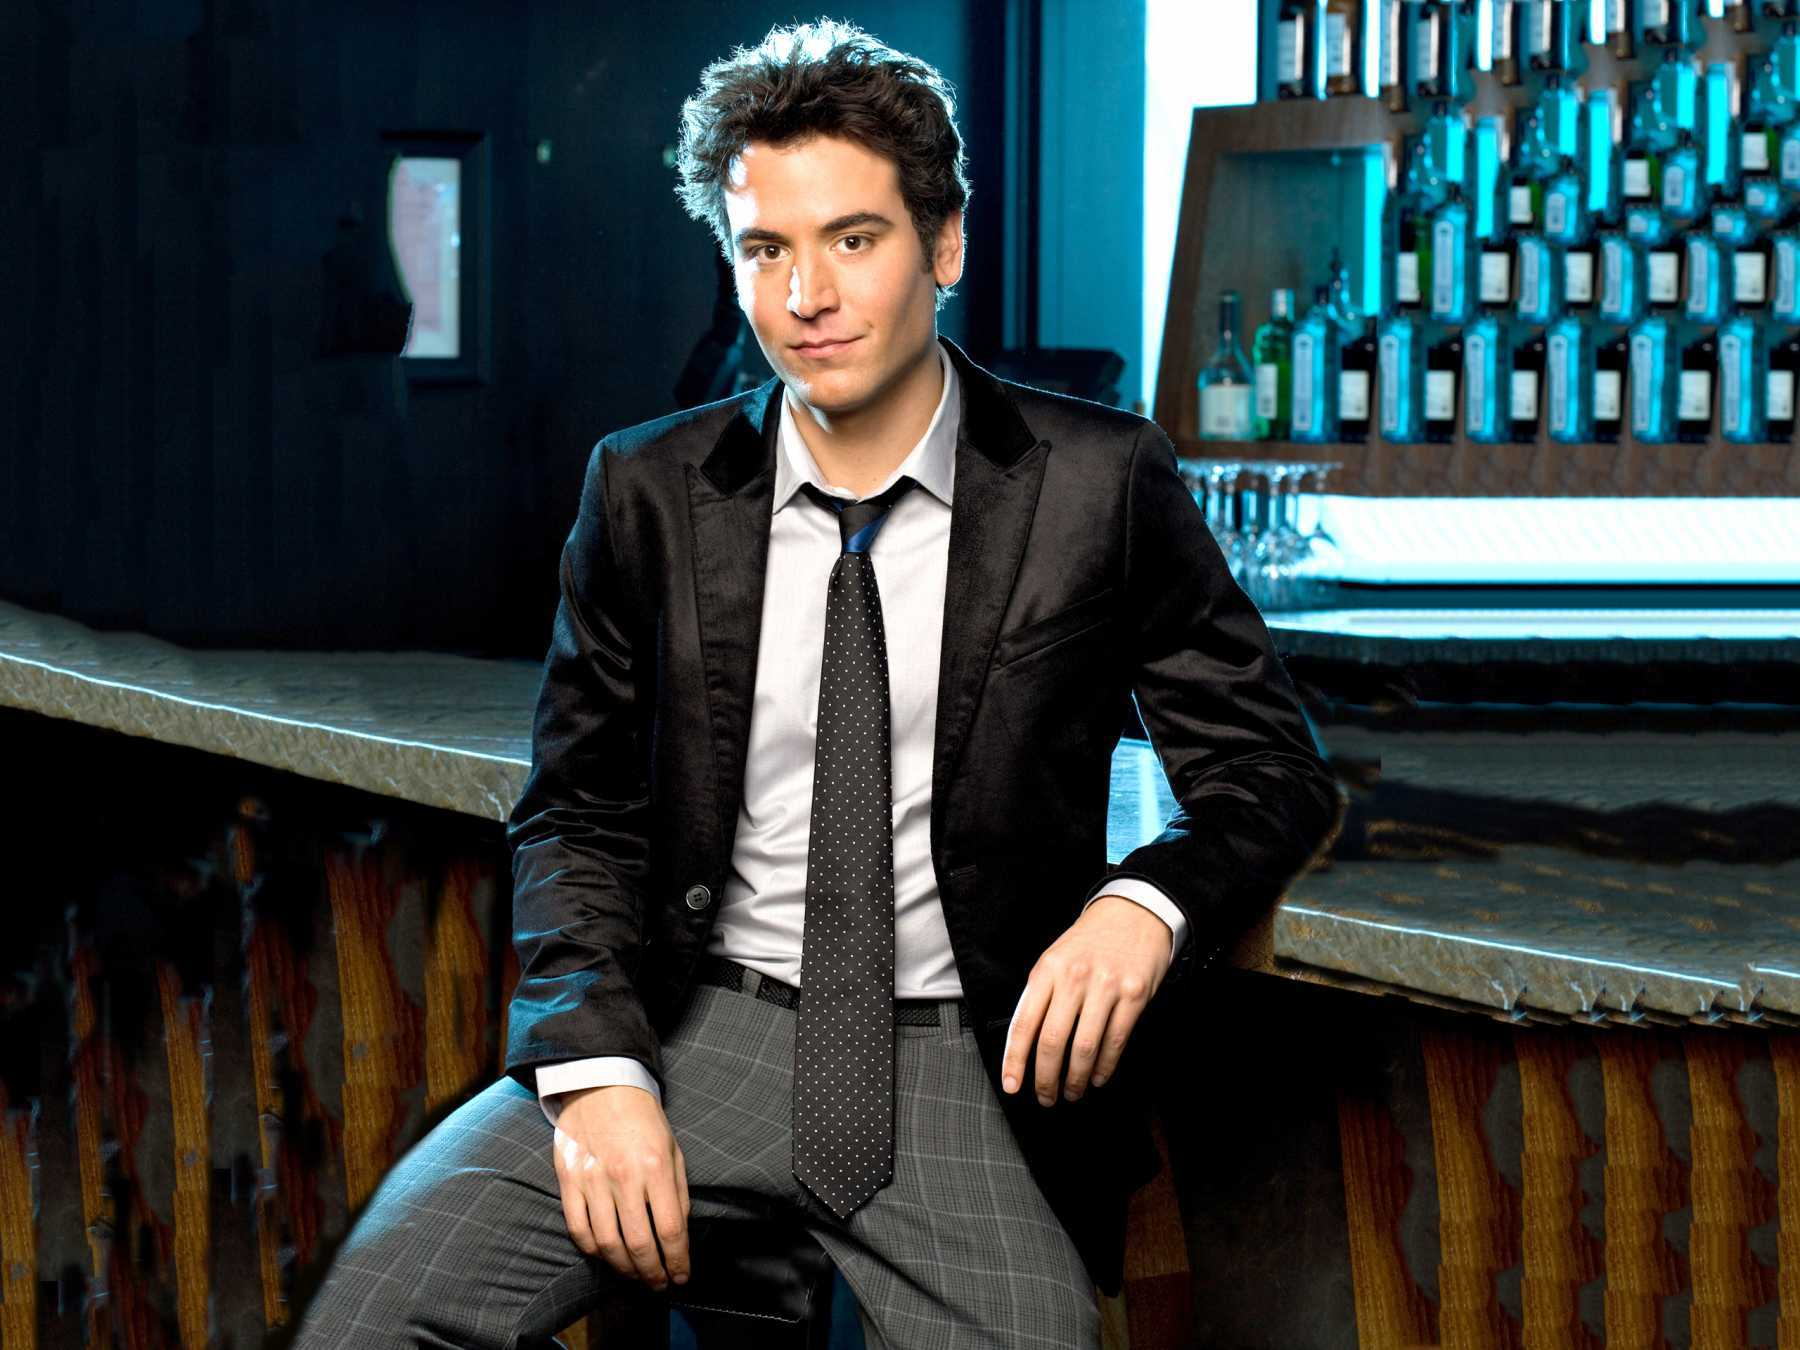 How I Met Your Mother's Josh Radnor Talks Acting, Life & Brand-New Album | Josh Radnor